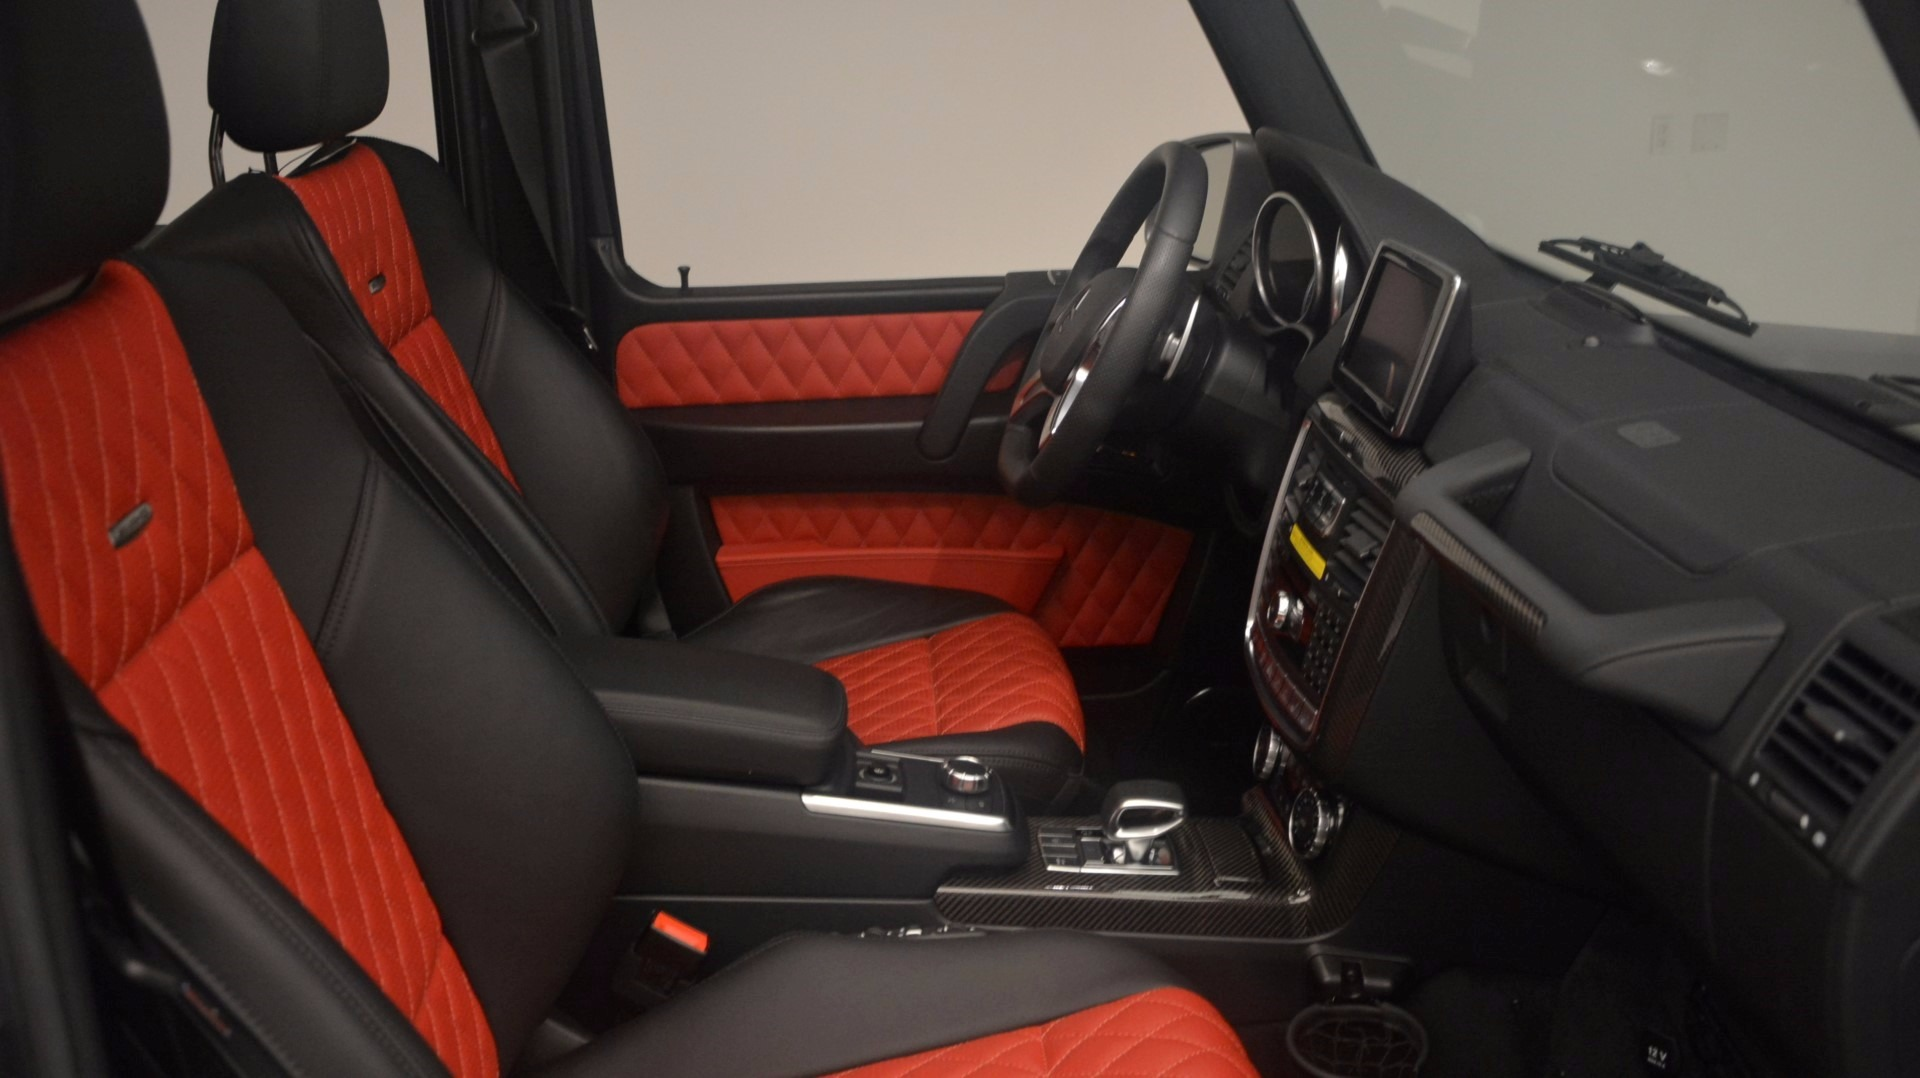 Used 2016 Mercedes Benz G-Class G 63 AMG For Sale In Westport, CT 1075_p17